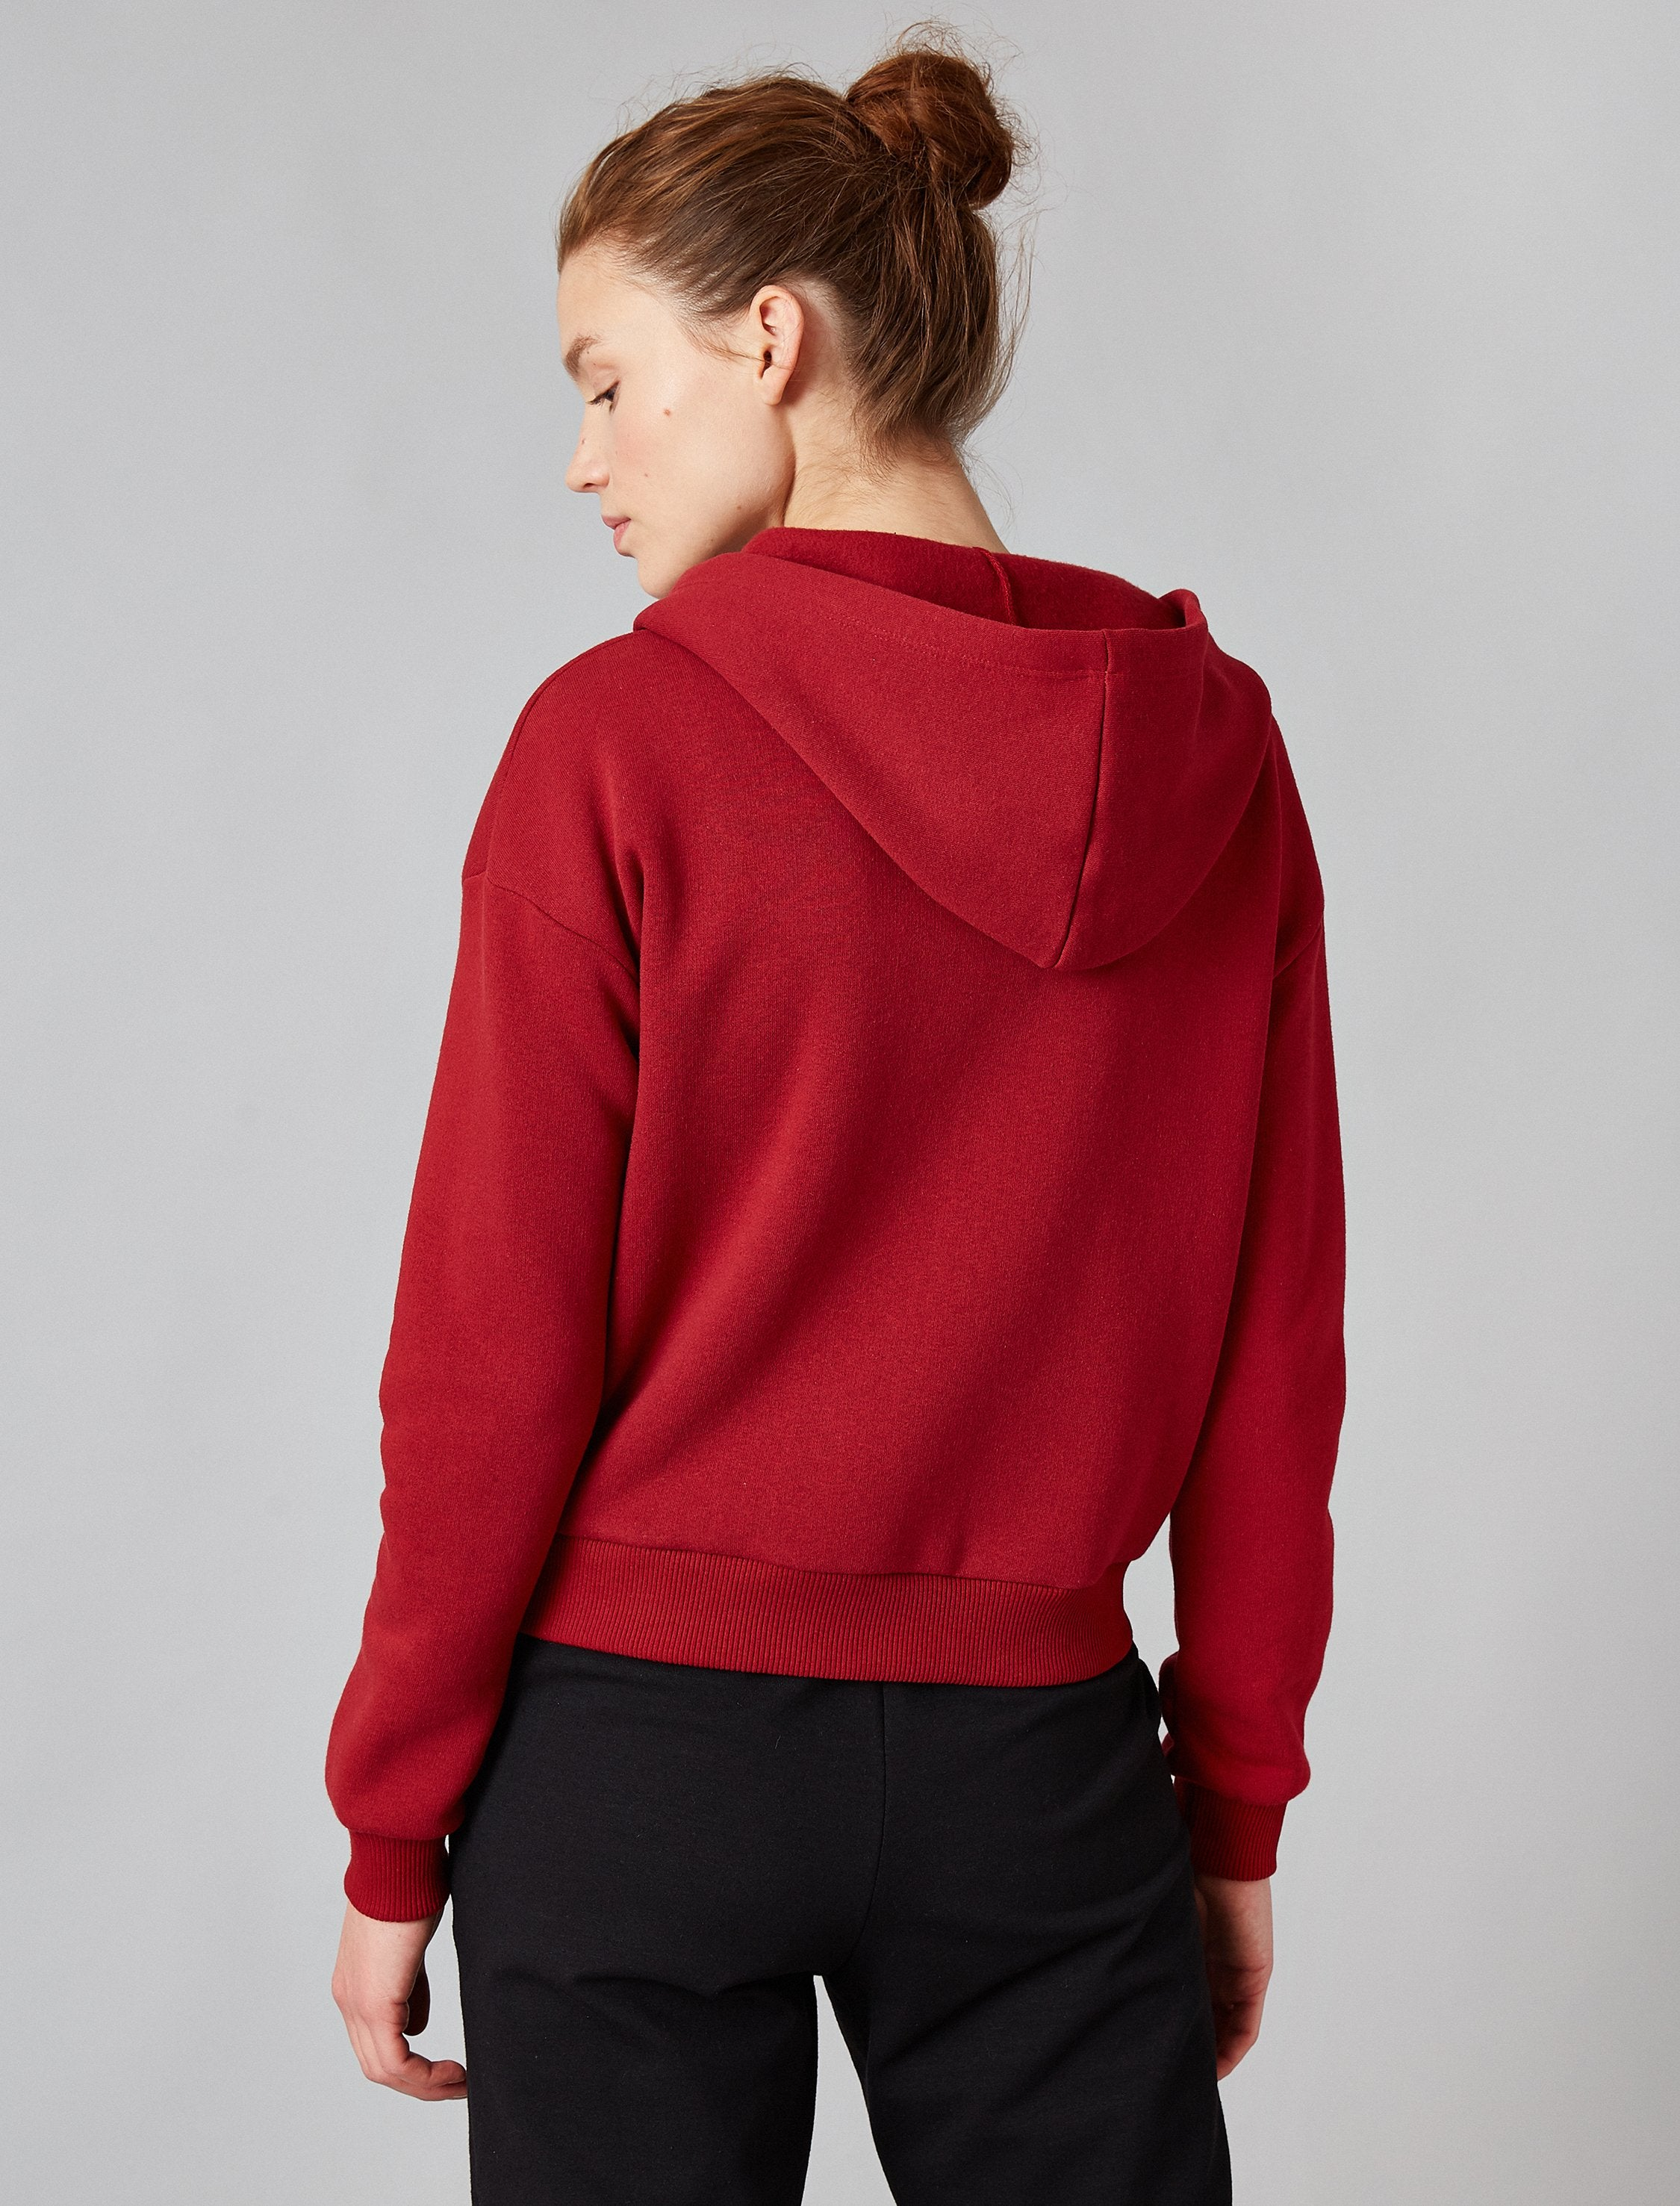 Cropped Zip-Up Hoodie in Merlot